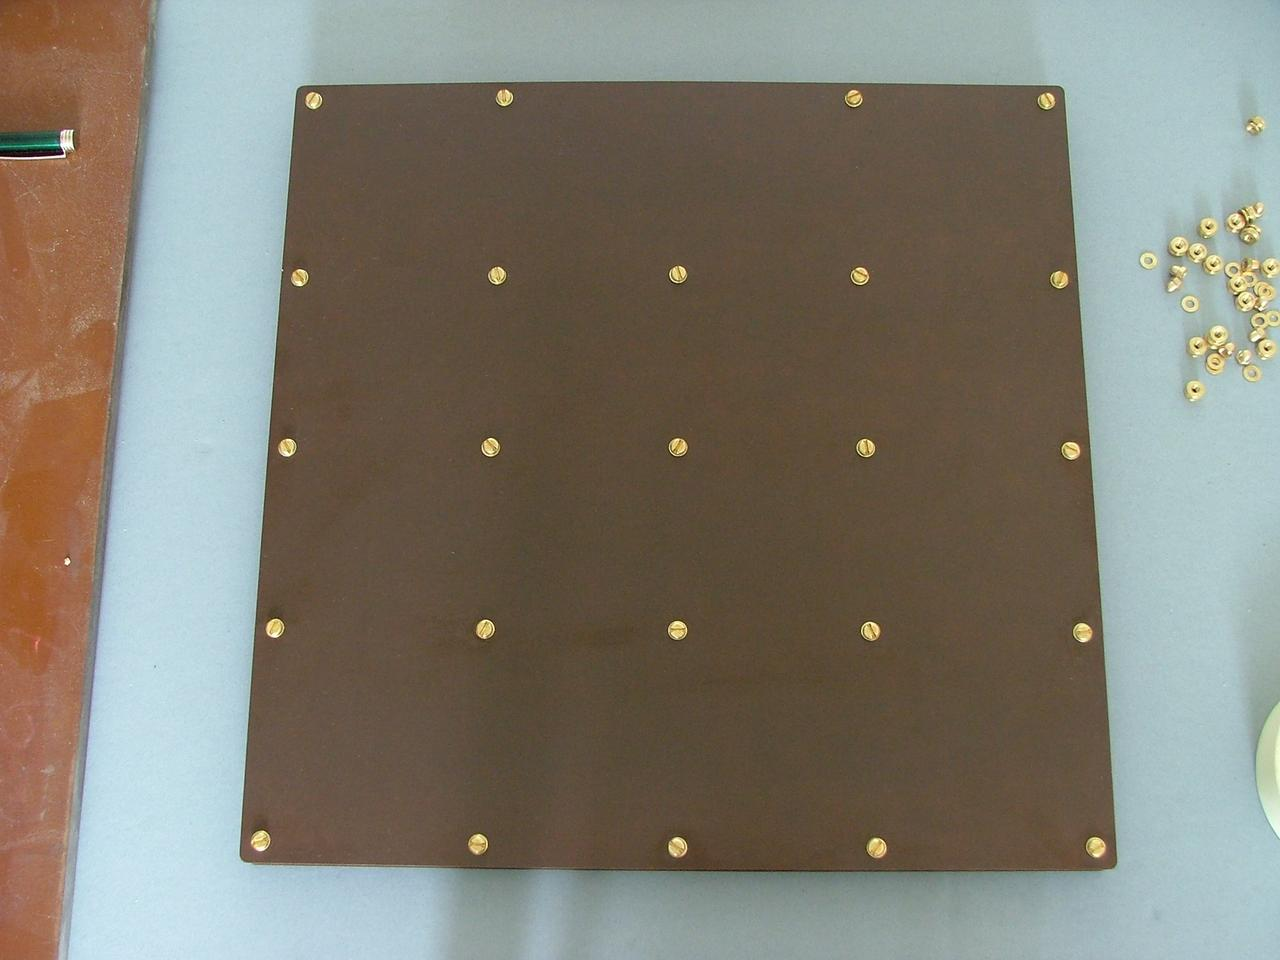 The bottom of the NOS Tufnol and phenolic resin laminate case, showing the placement of brass bolts